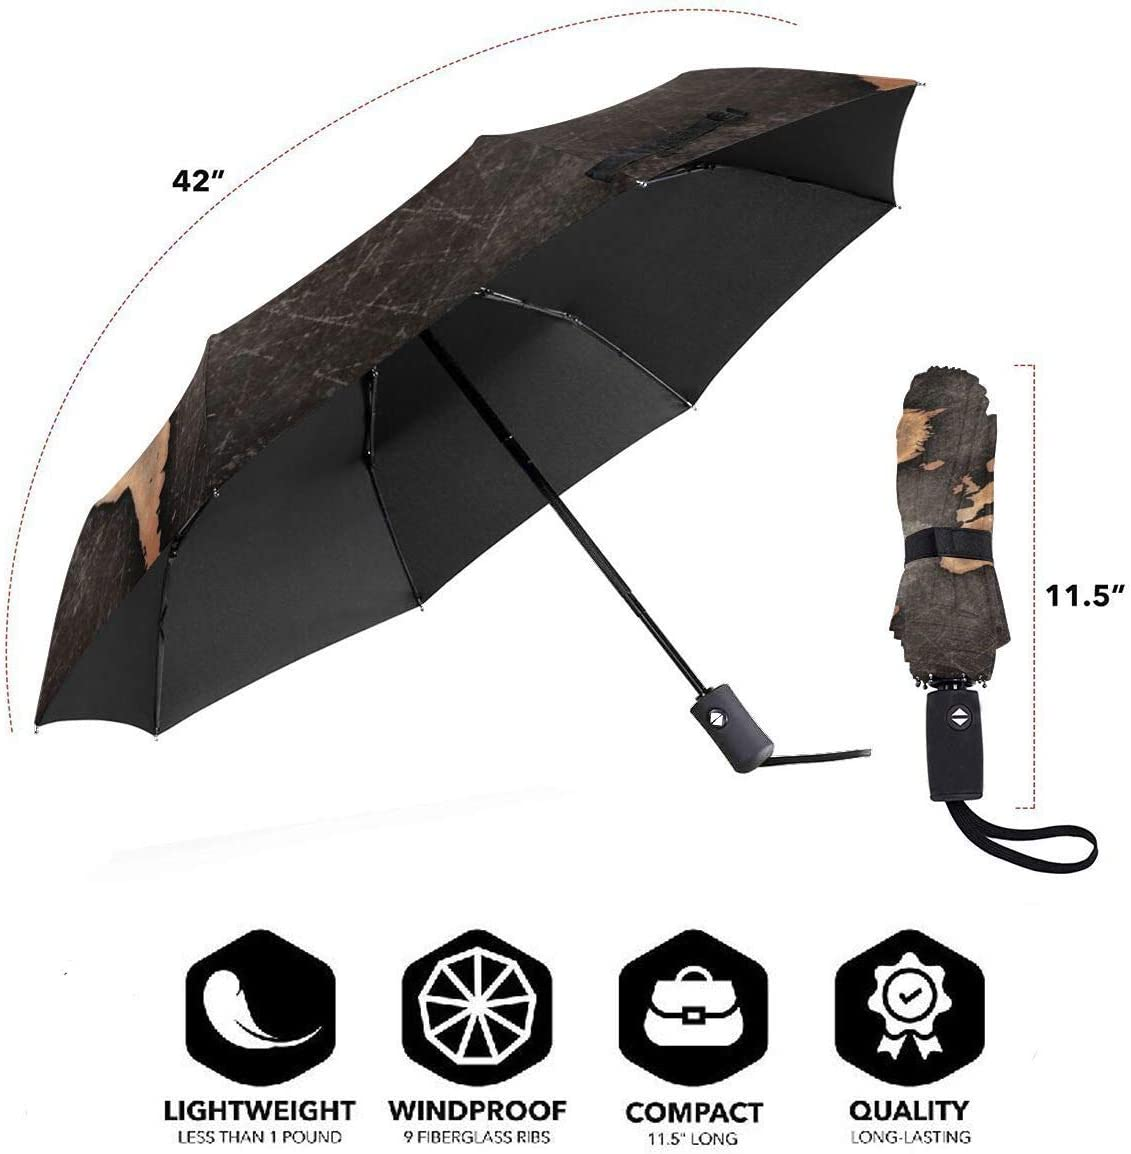 Windproof Reinforced Canopy Ergonomic Handle Auto Open//Close Multiple Colors World Map 2 Compact Travel Umbrella